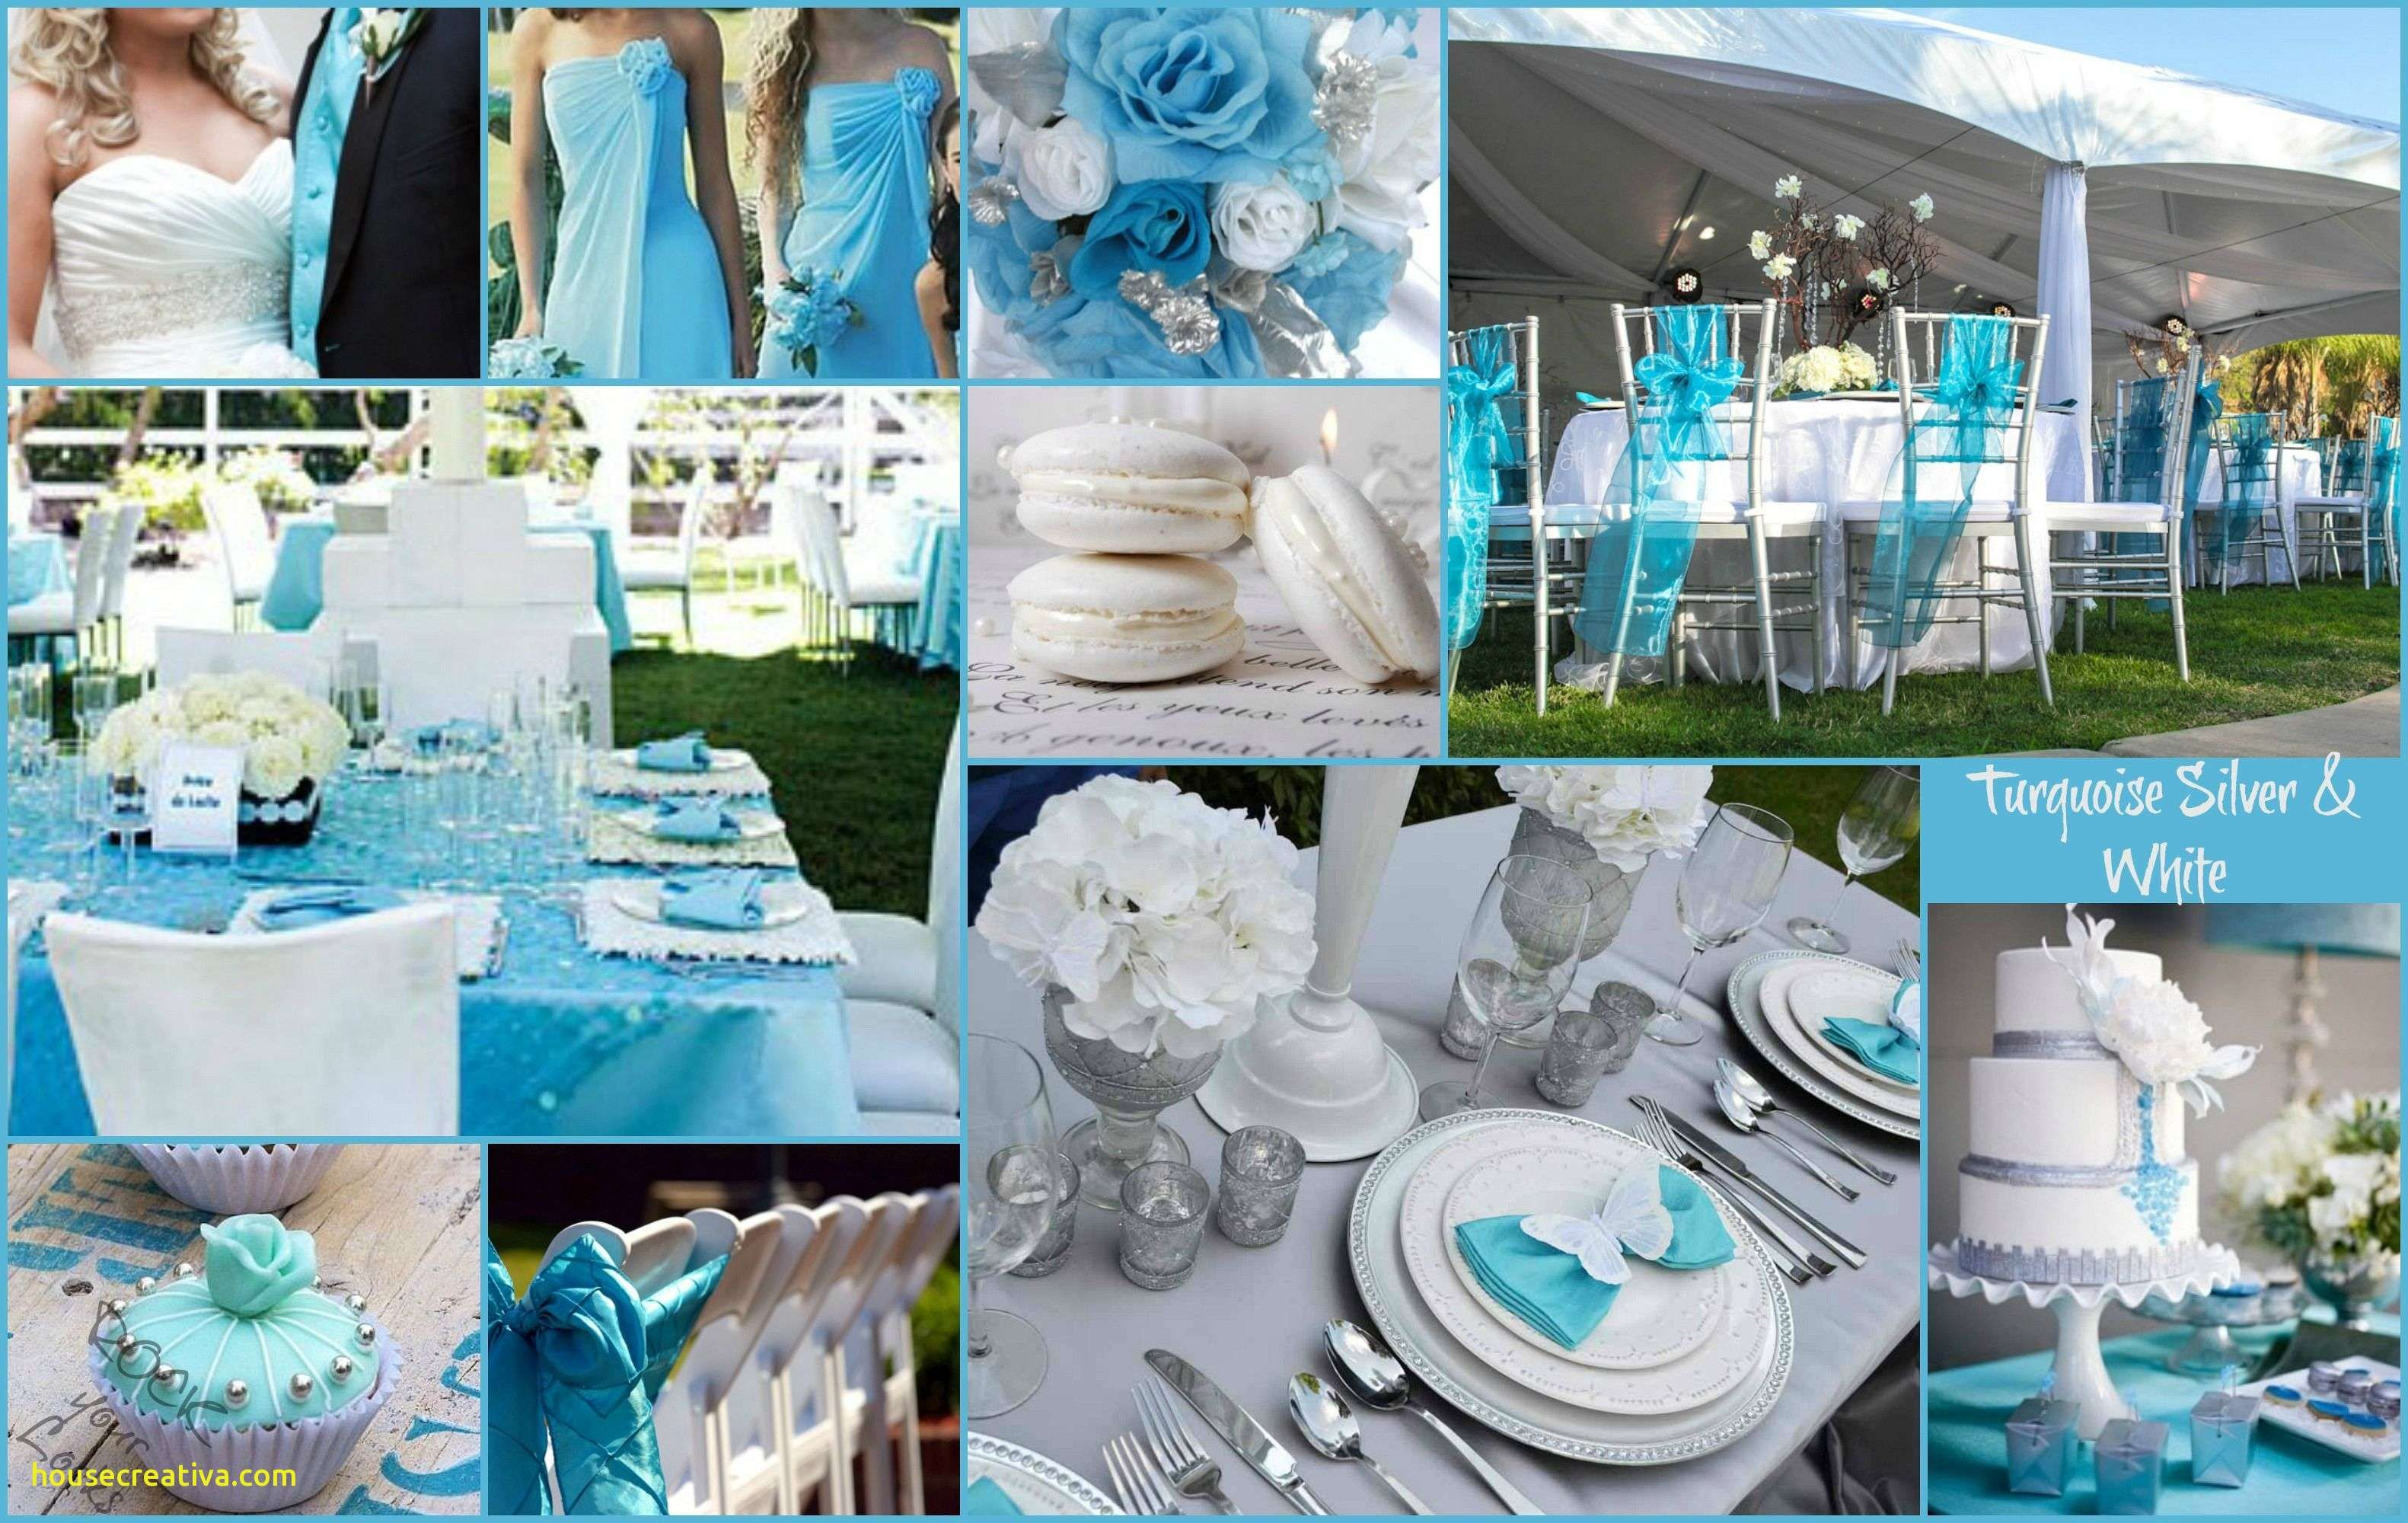 Beautiful Baby Blue Silver And White Wedding Decorations Homedecoration Homedecorations Homedecorationideas Homedecorationtrends Homedecorationincrochet